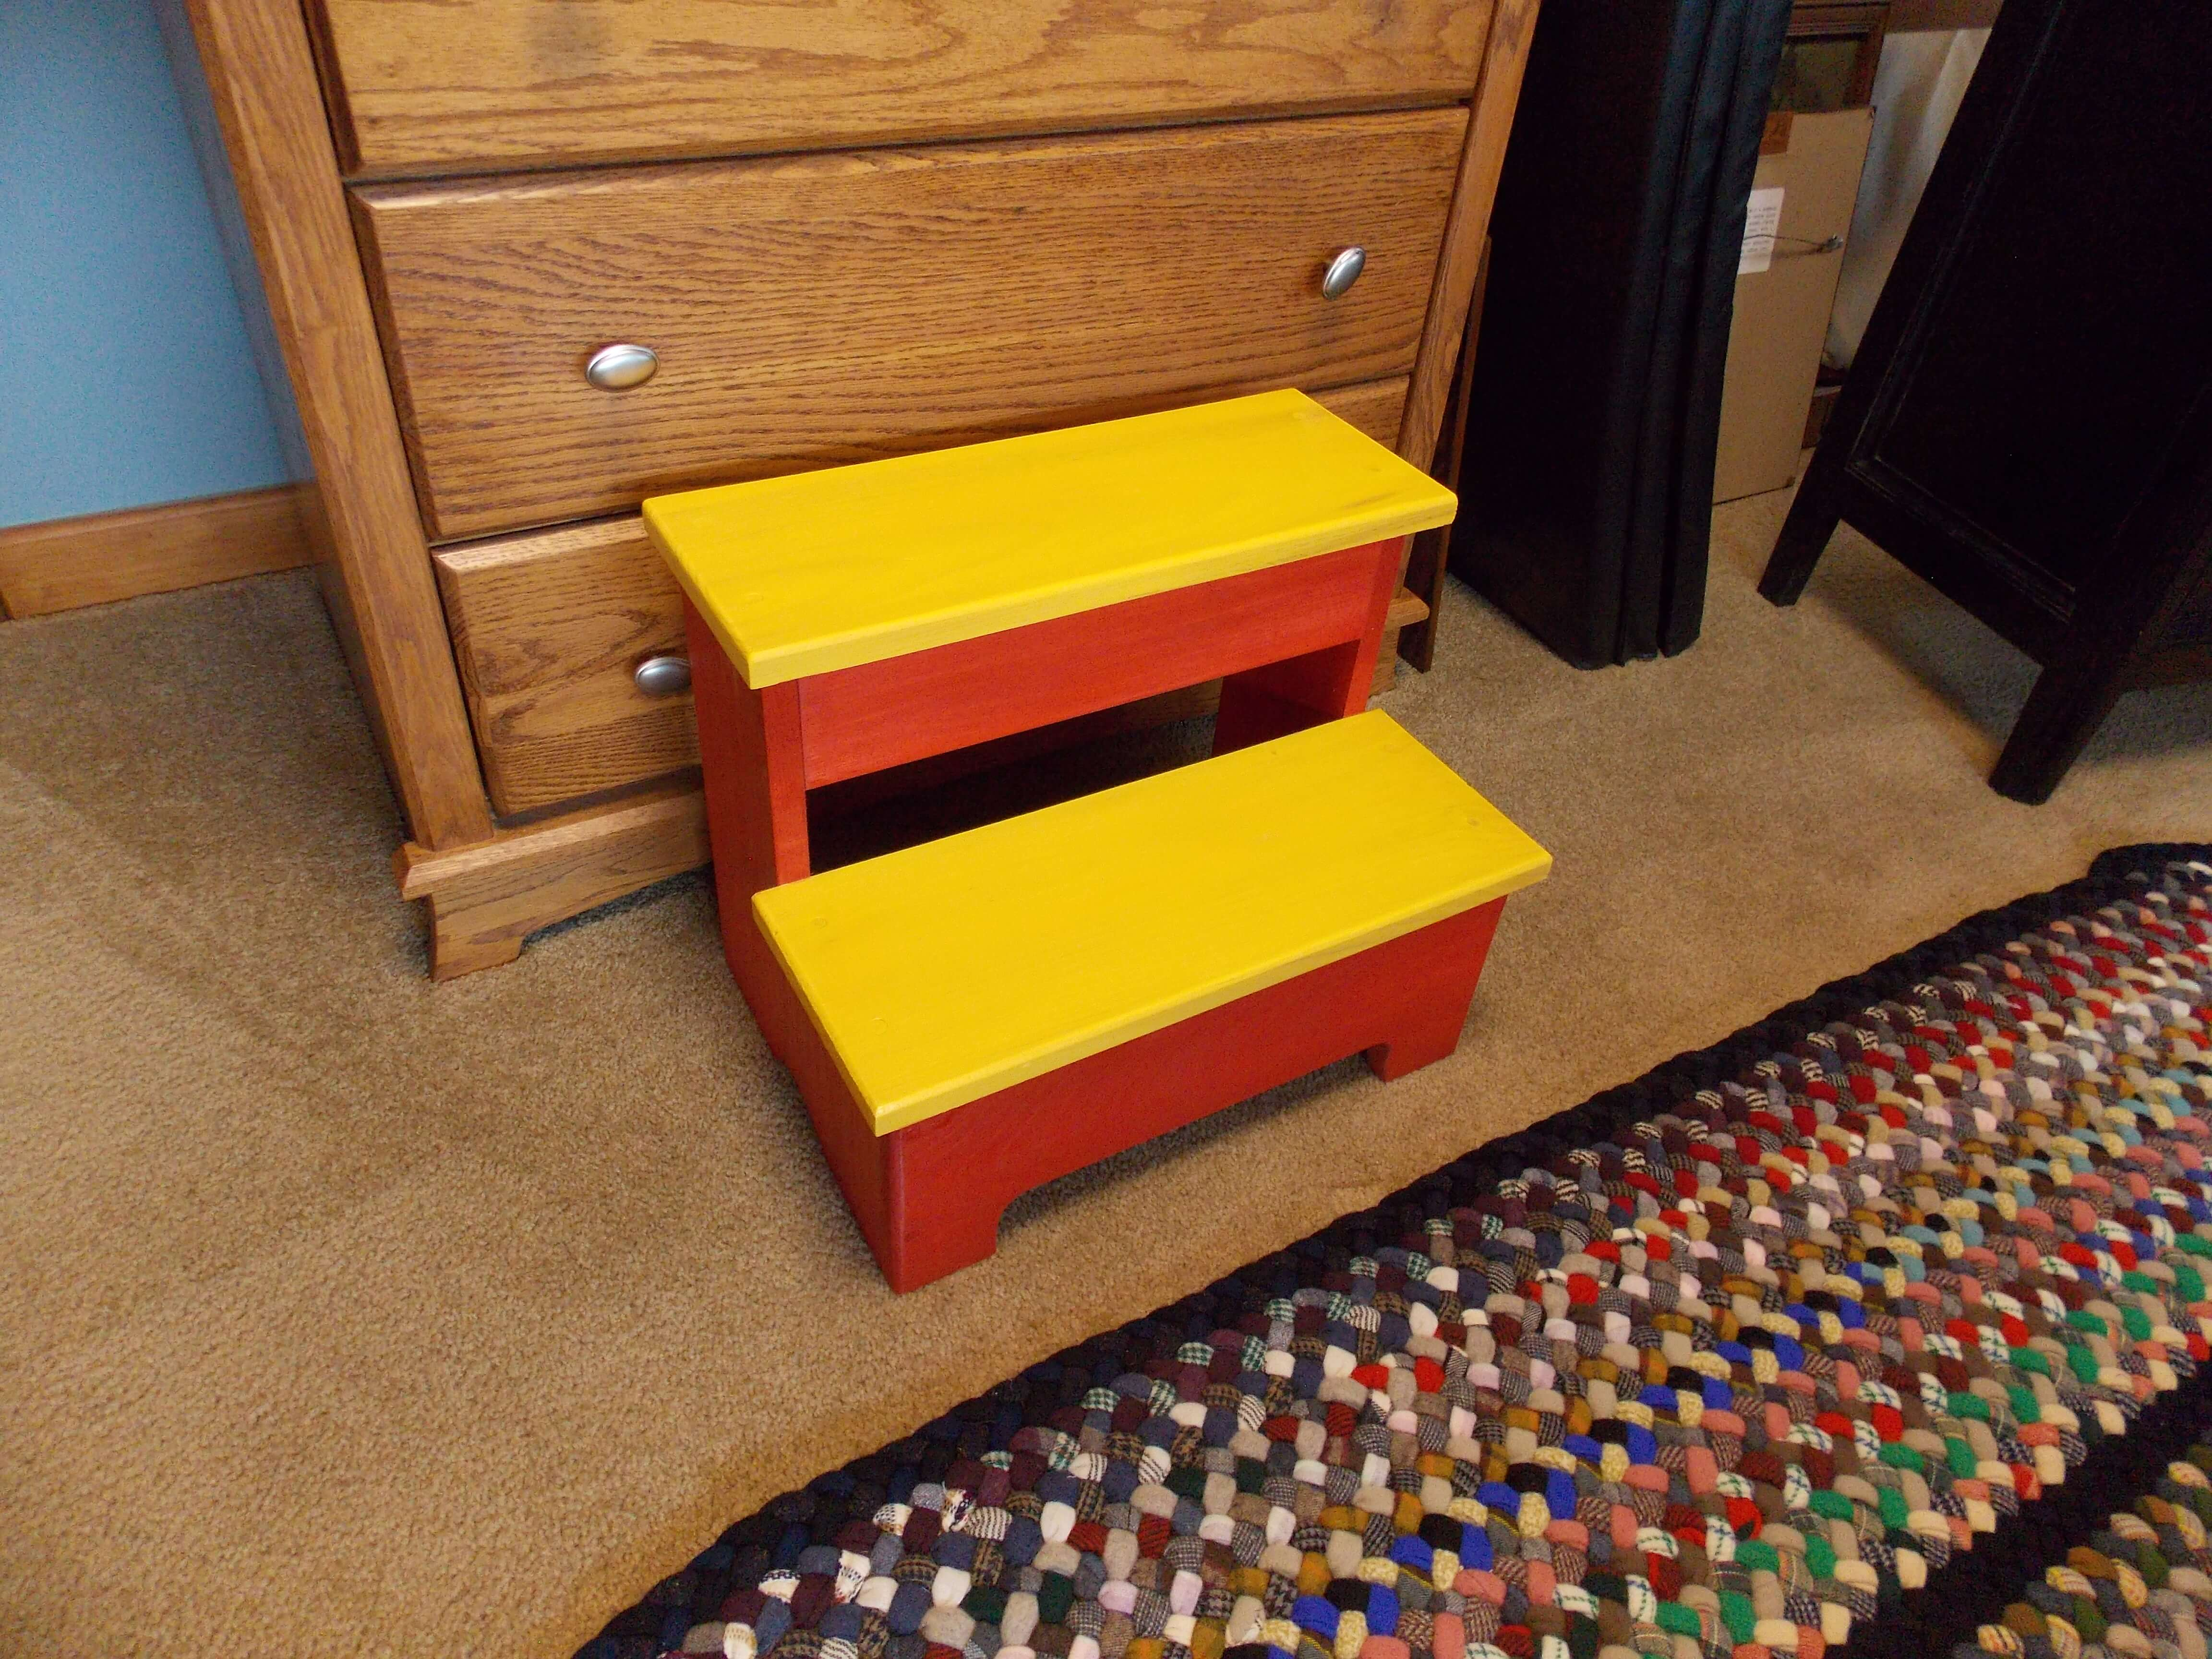 Completed Project Finished Colorful Step Stool